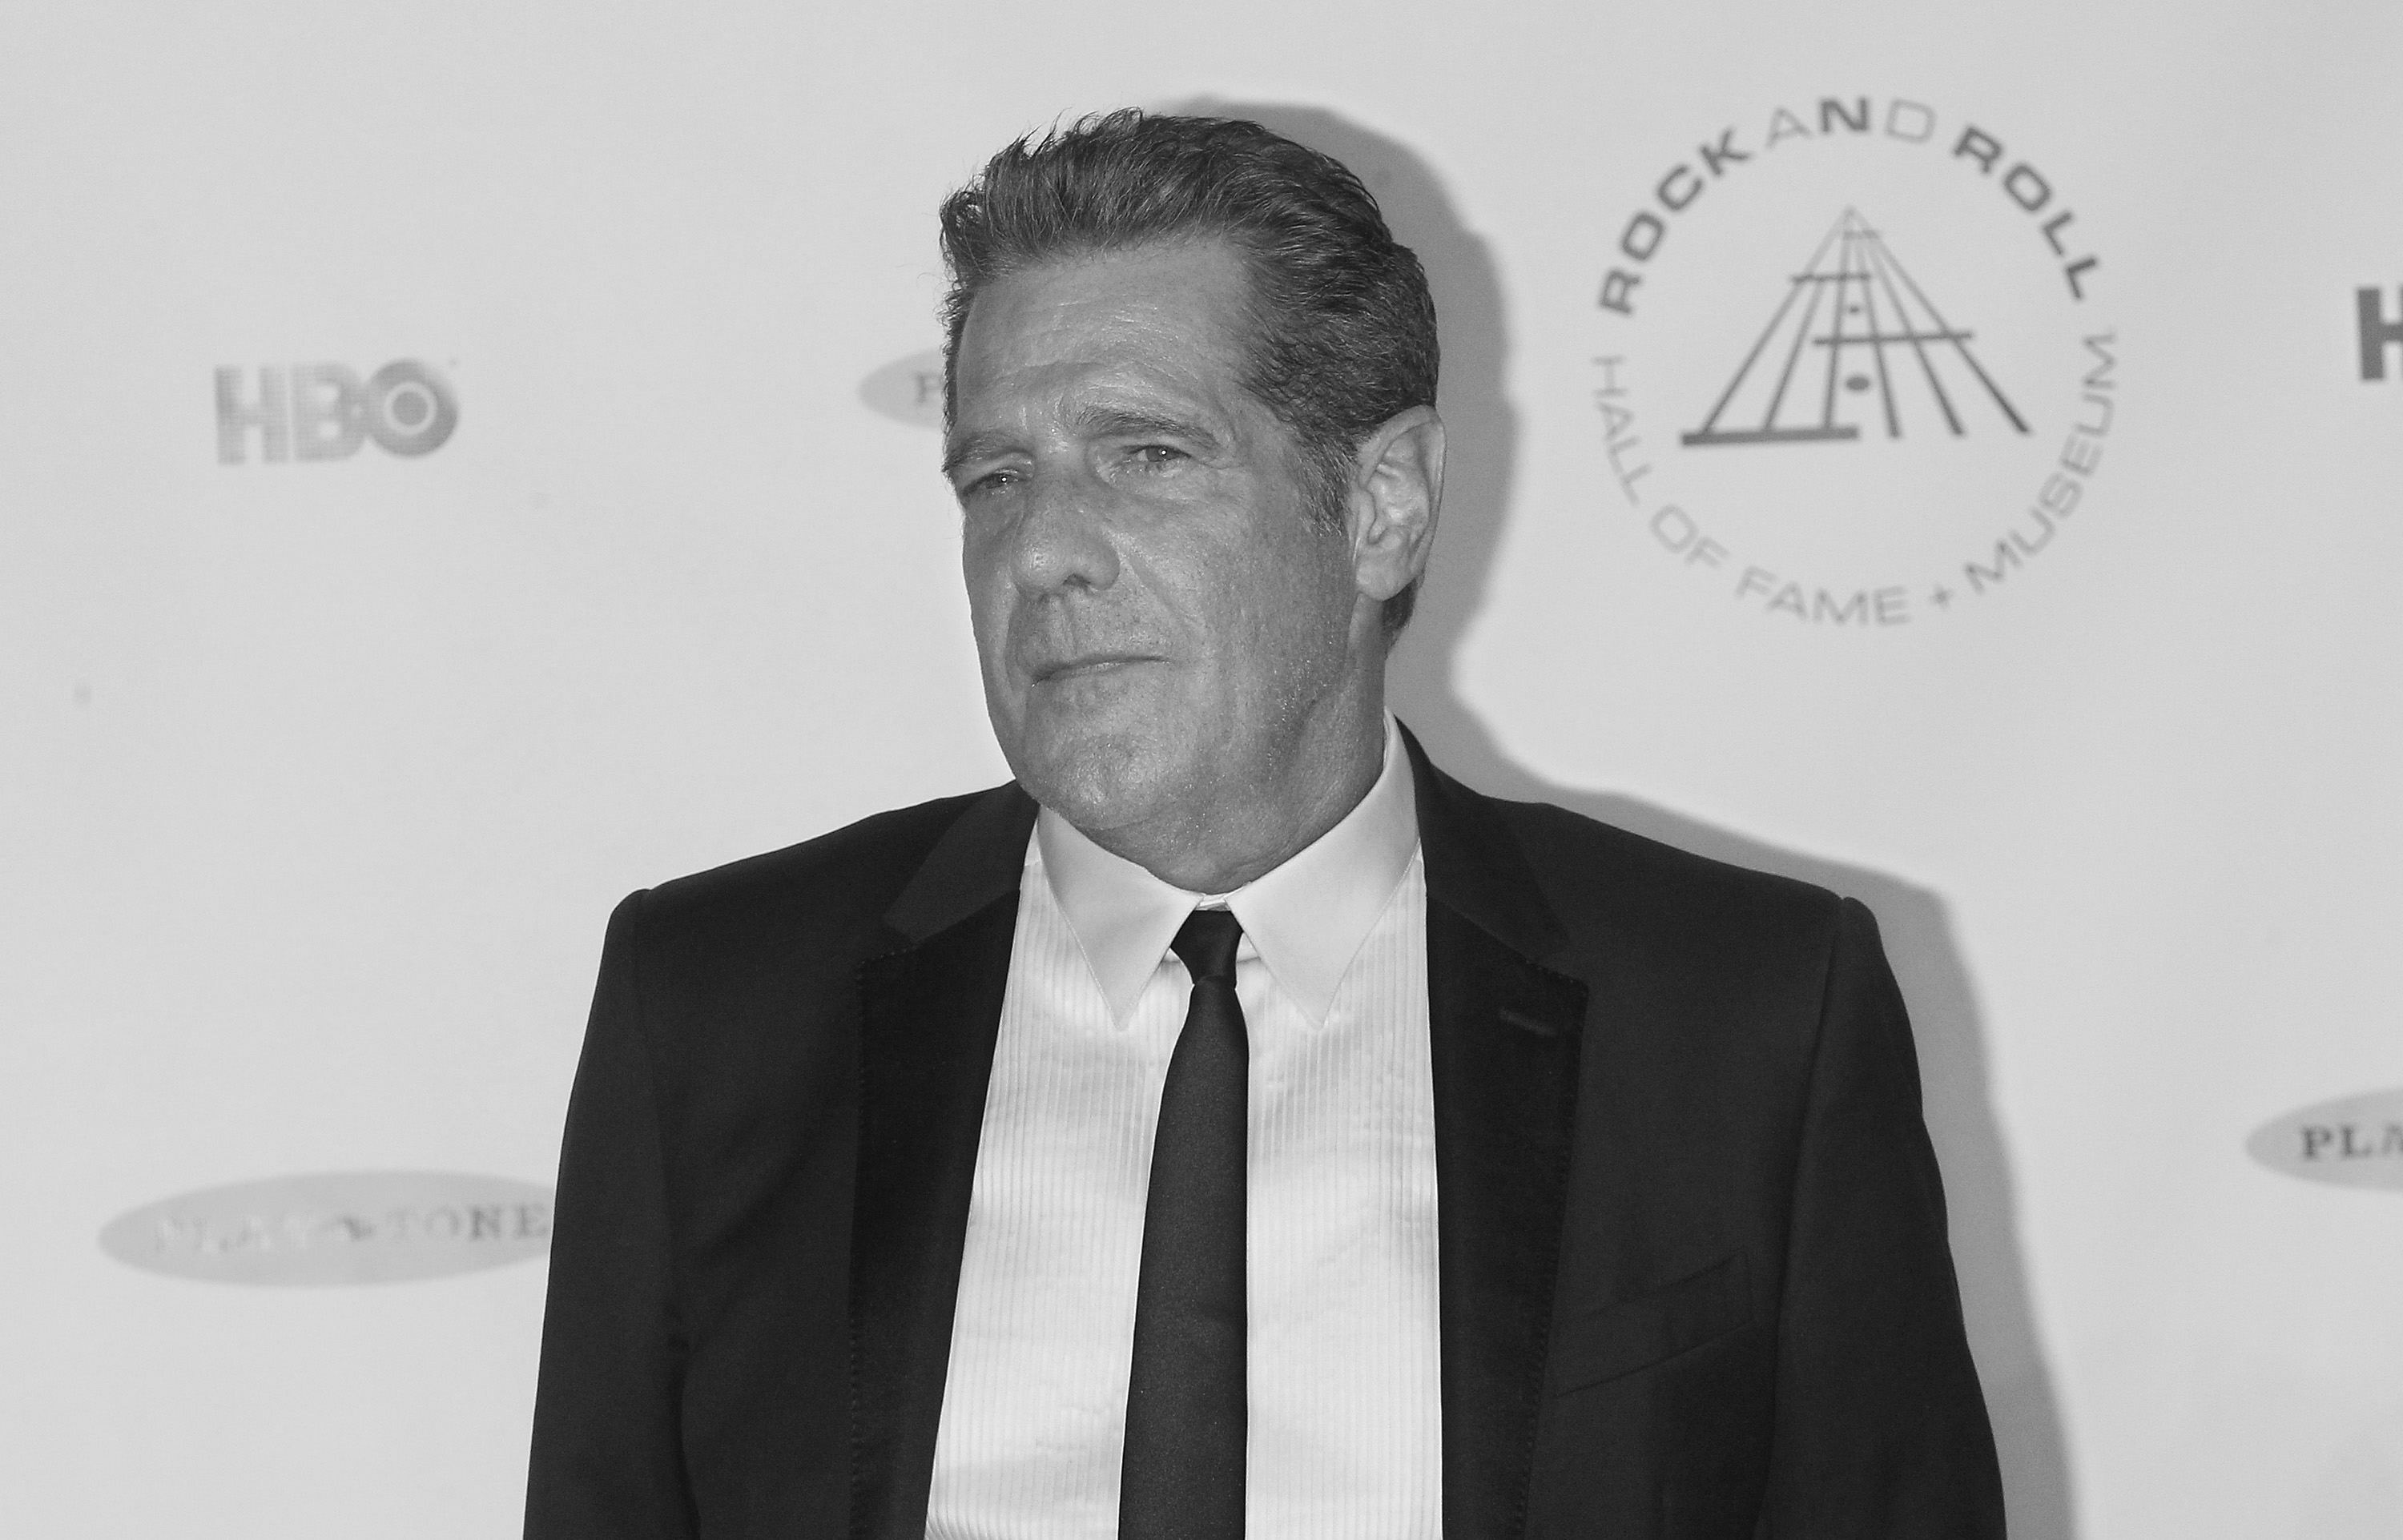 NEW YORK, NY - APRIL 10:  Musician Glenn Frey attends the 29th Annual Rock And Roll Hall Of Fame Induction Ceremony at Barcla